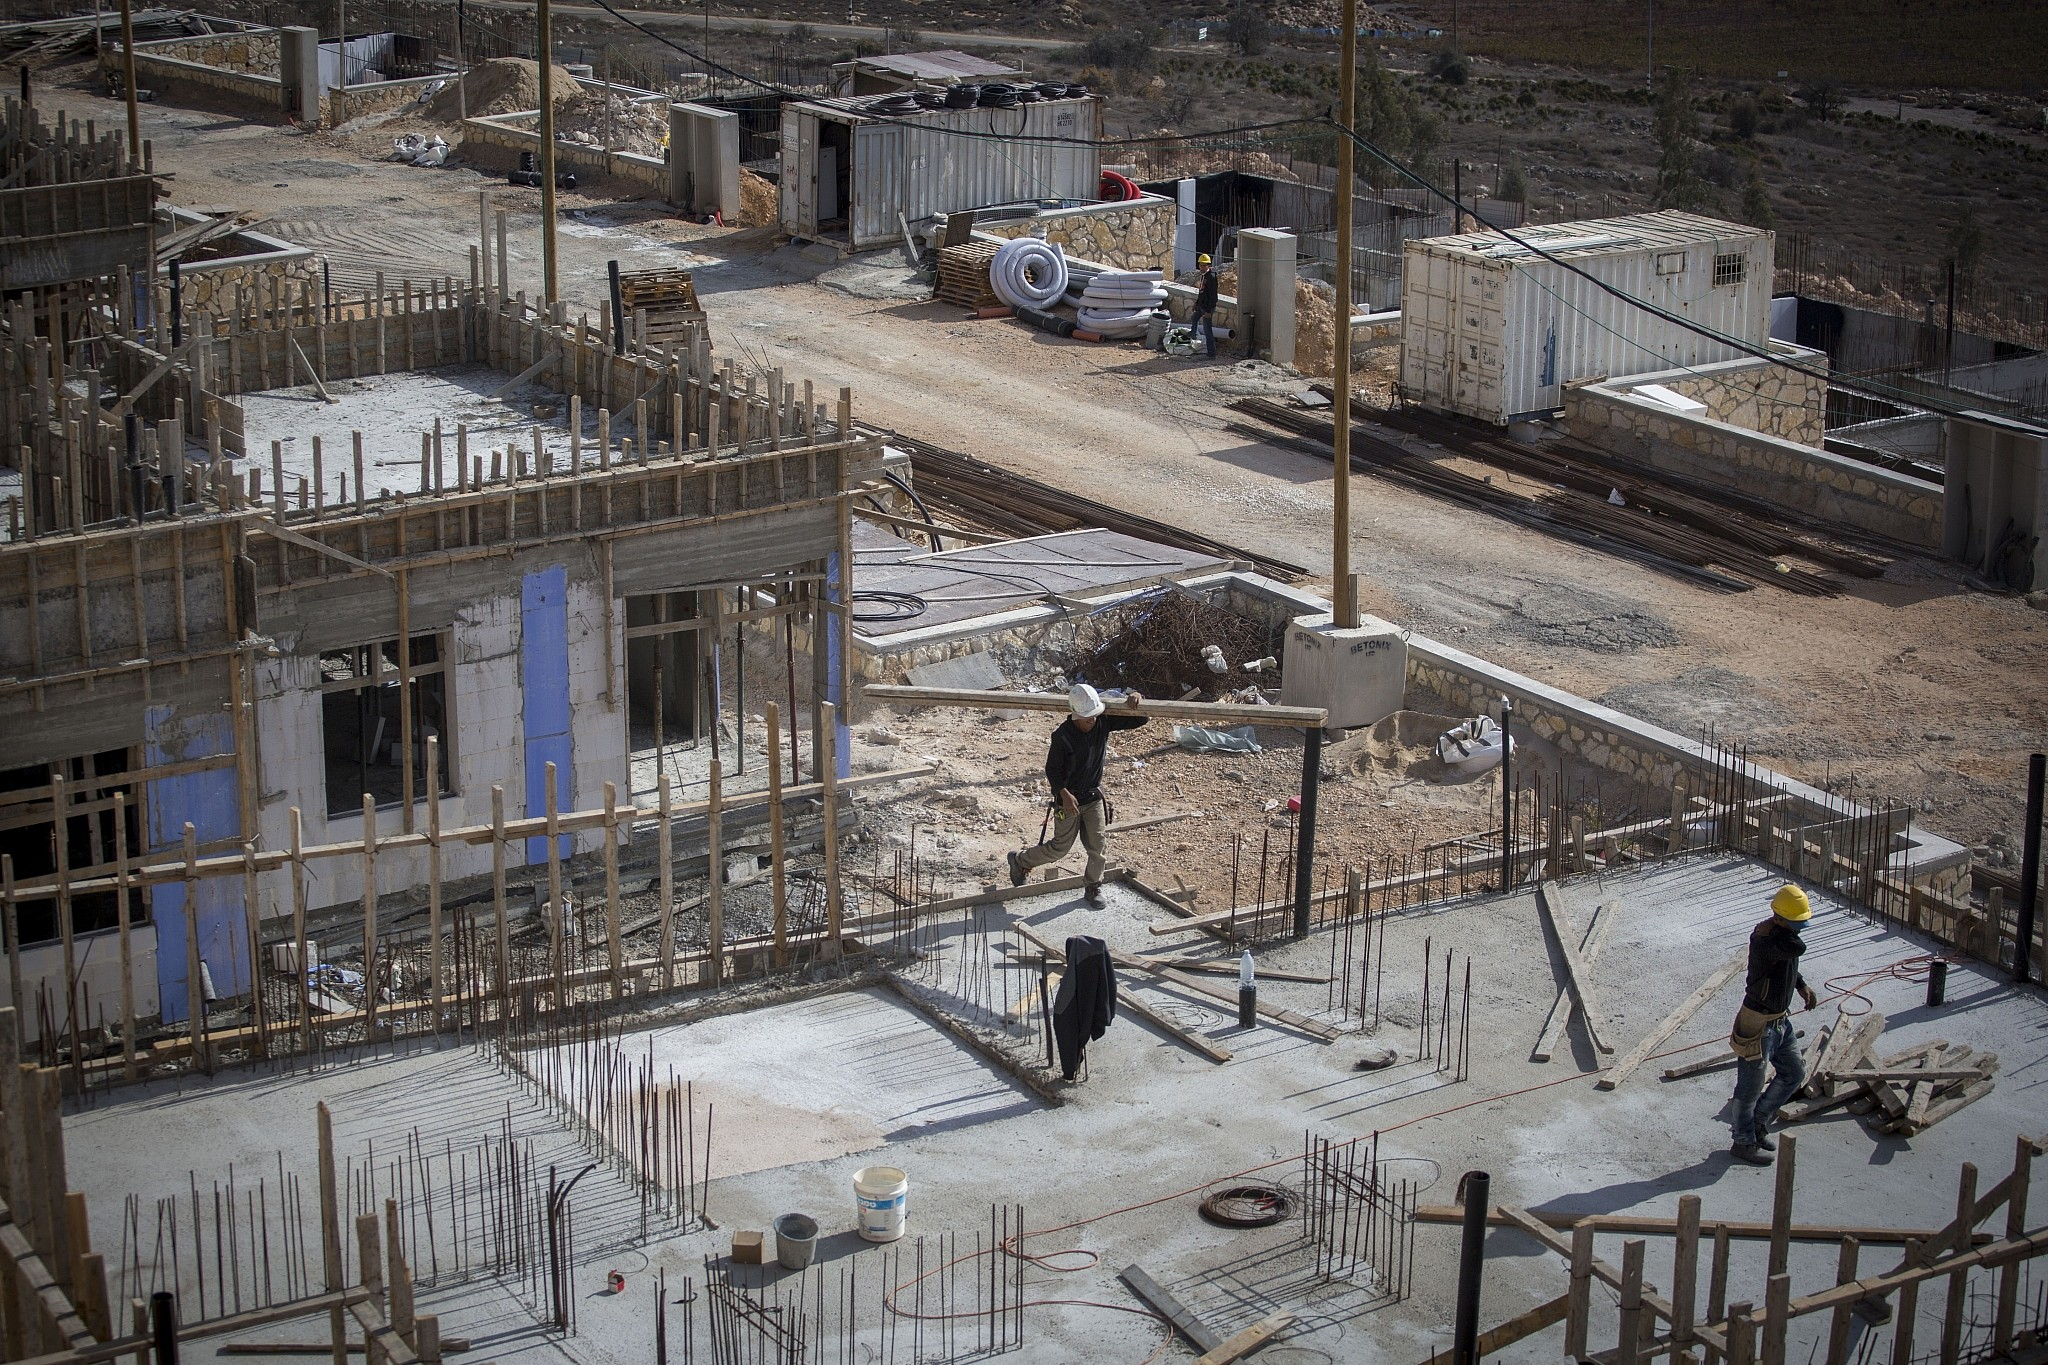 Construction of new homes in the Israeli settlement of Shiloh. November 17, 2016. (Miriam Alster/Flash90)